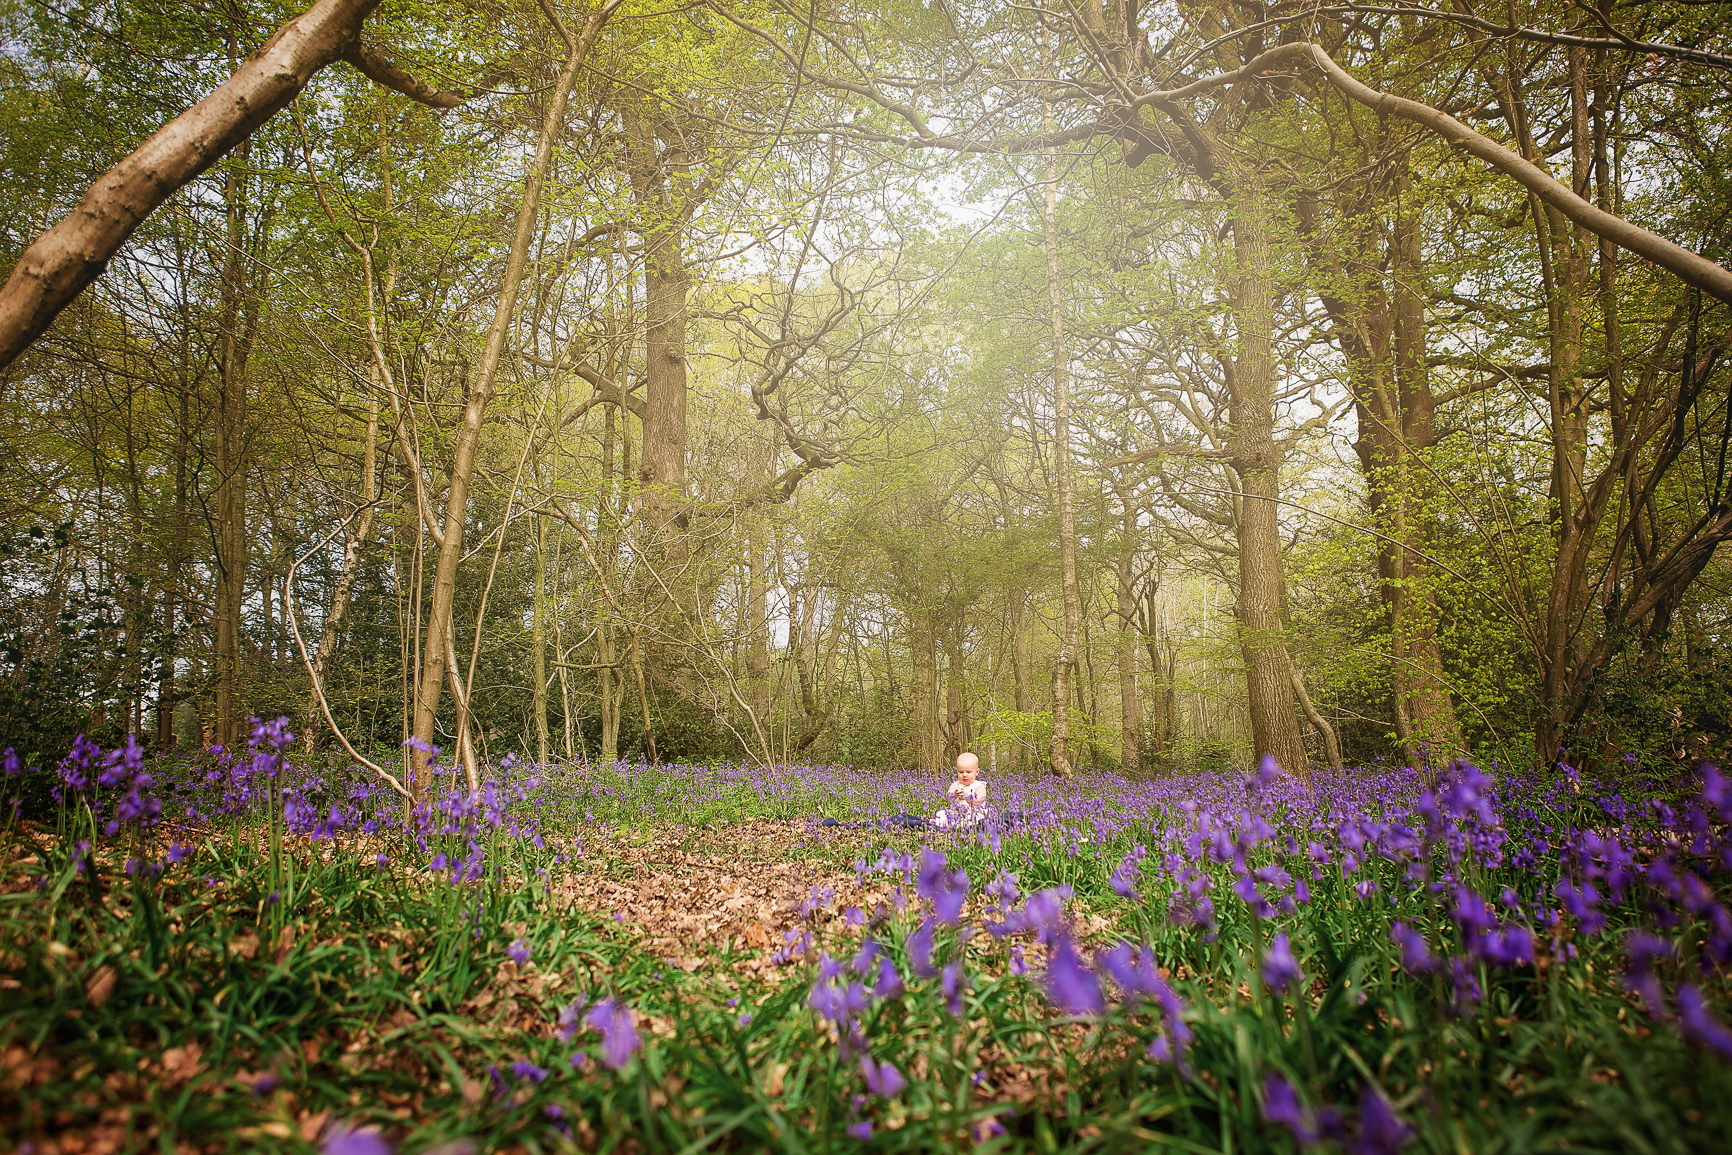 Child Portrait, Bluebells, Swithland Woods, Leicestershire